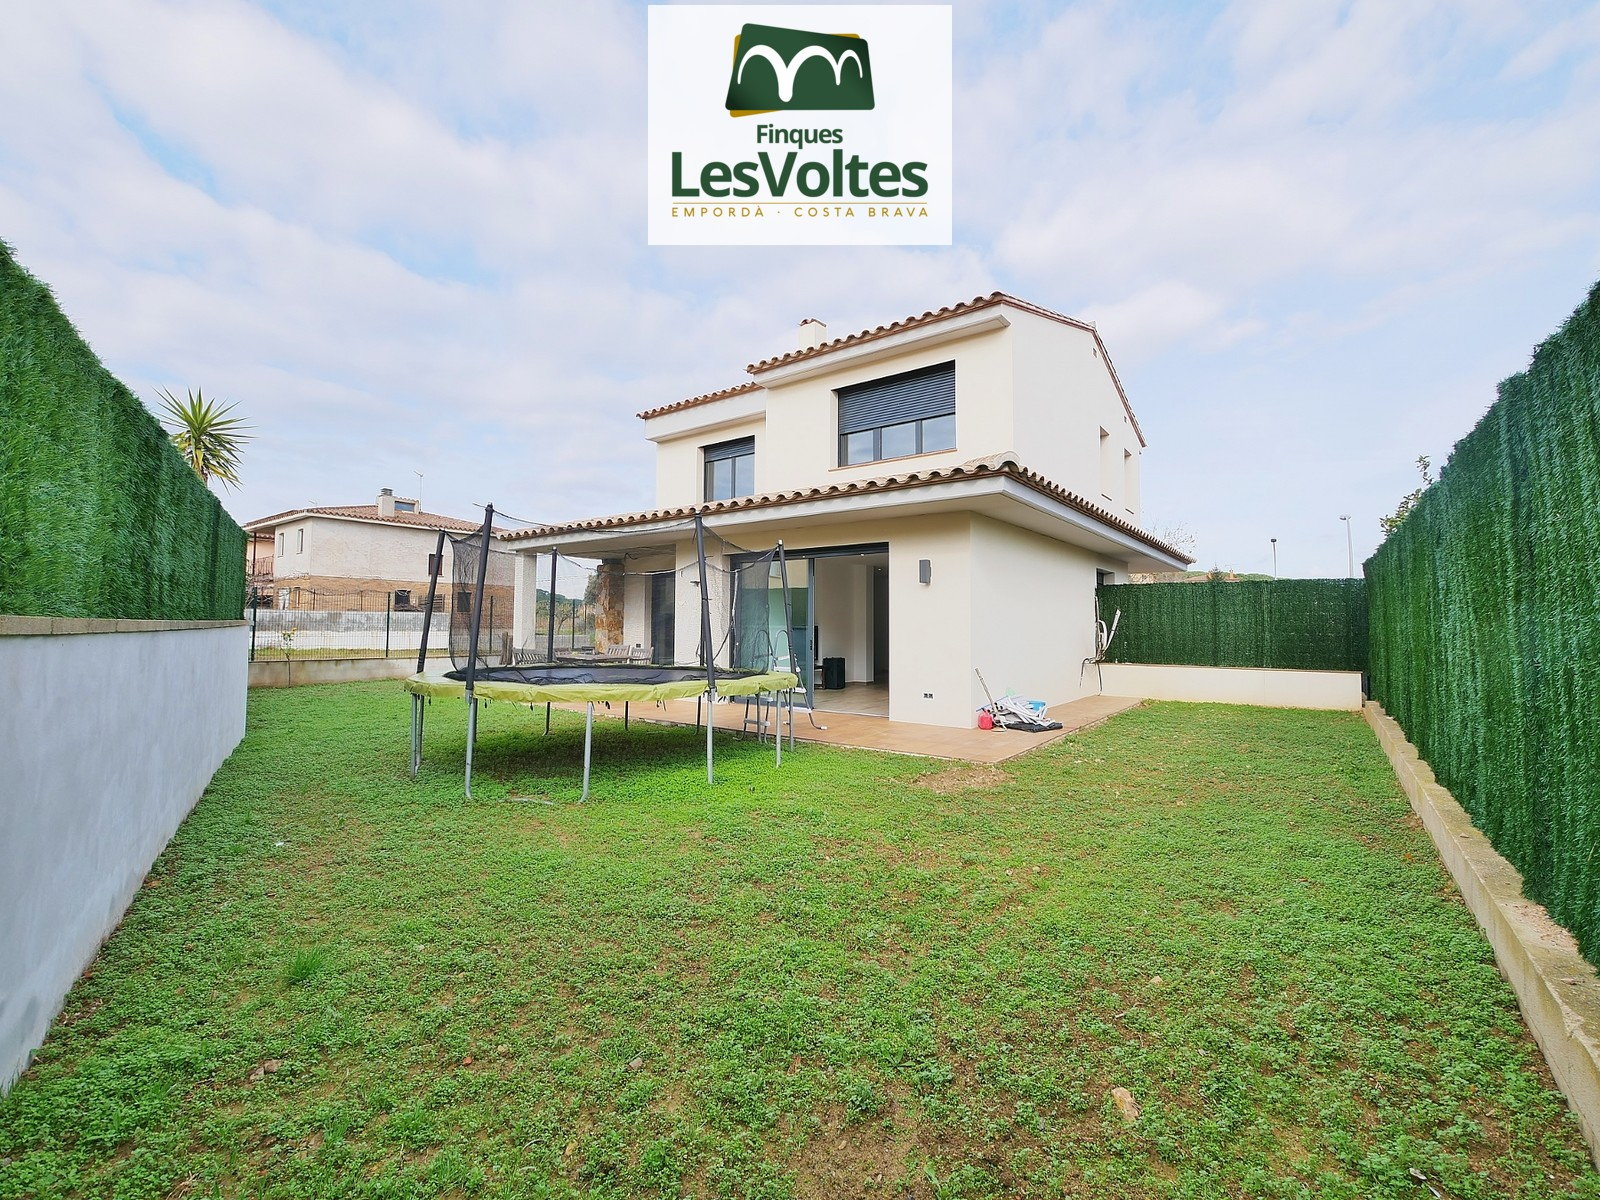 MAGNIFICENT SINGLE-FAMILY HOUSE OF NEW CONSTRUCTION AND CONTEMPORARY STYLE FOR SALE IN PALAFRUGELL. RESIDENTIAL AREA NEAR THE